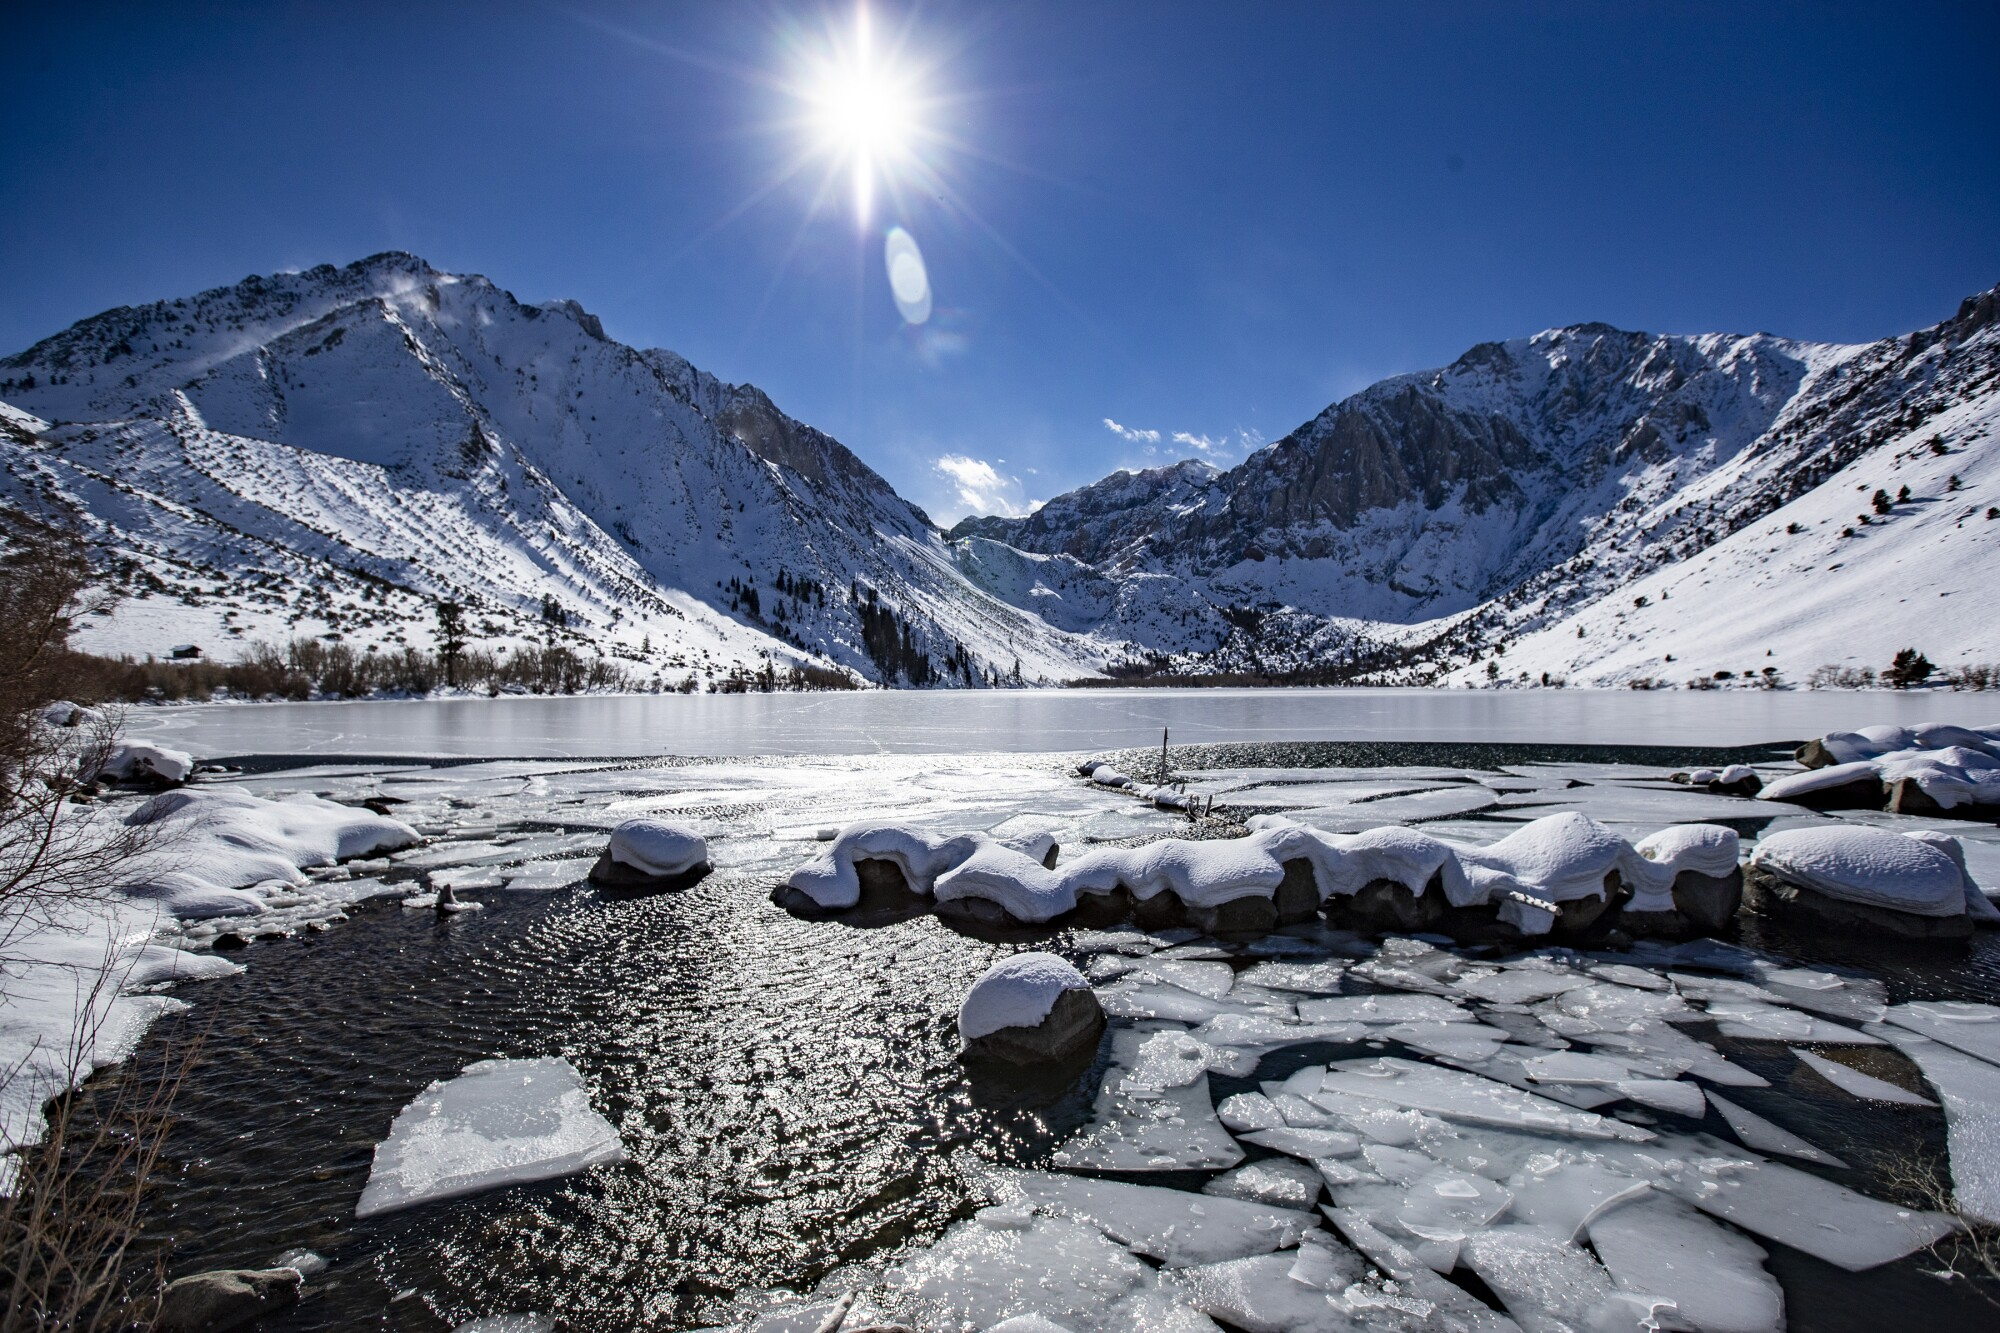 Ice breaks up at the mouth of Convict Creek overlooking Convict Lake and the Sierra Nevada range near Mammoth Lakes.